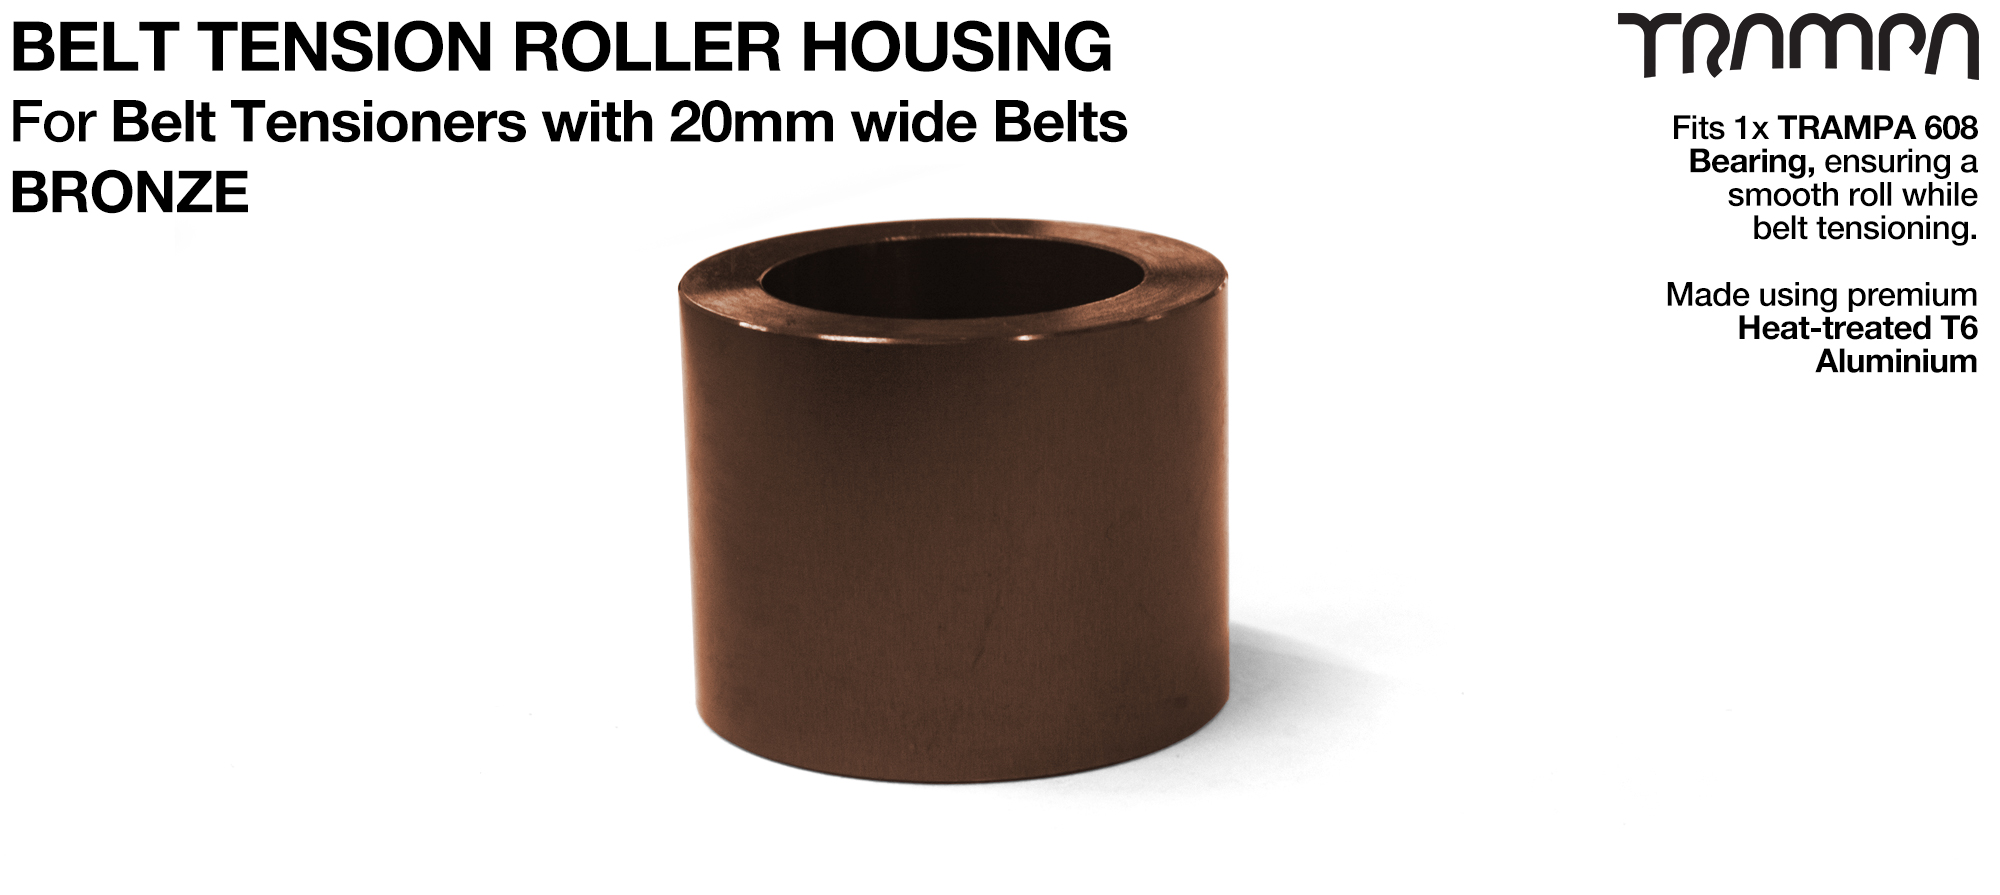 Belt Tension Roller Housing for 20mm Belts - BRONZE